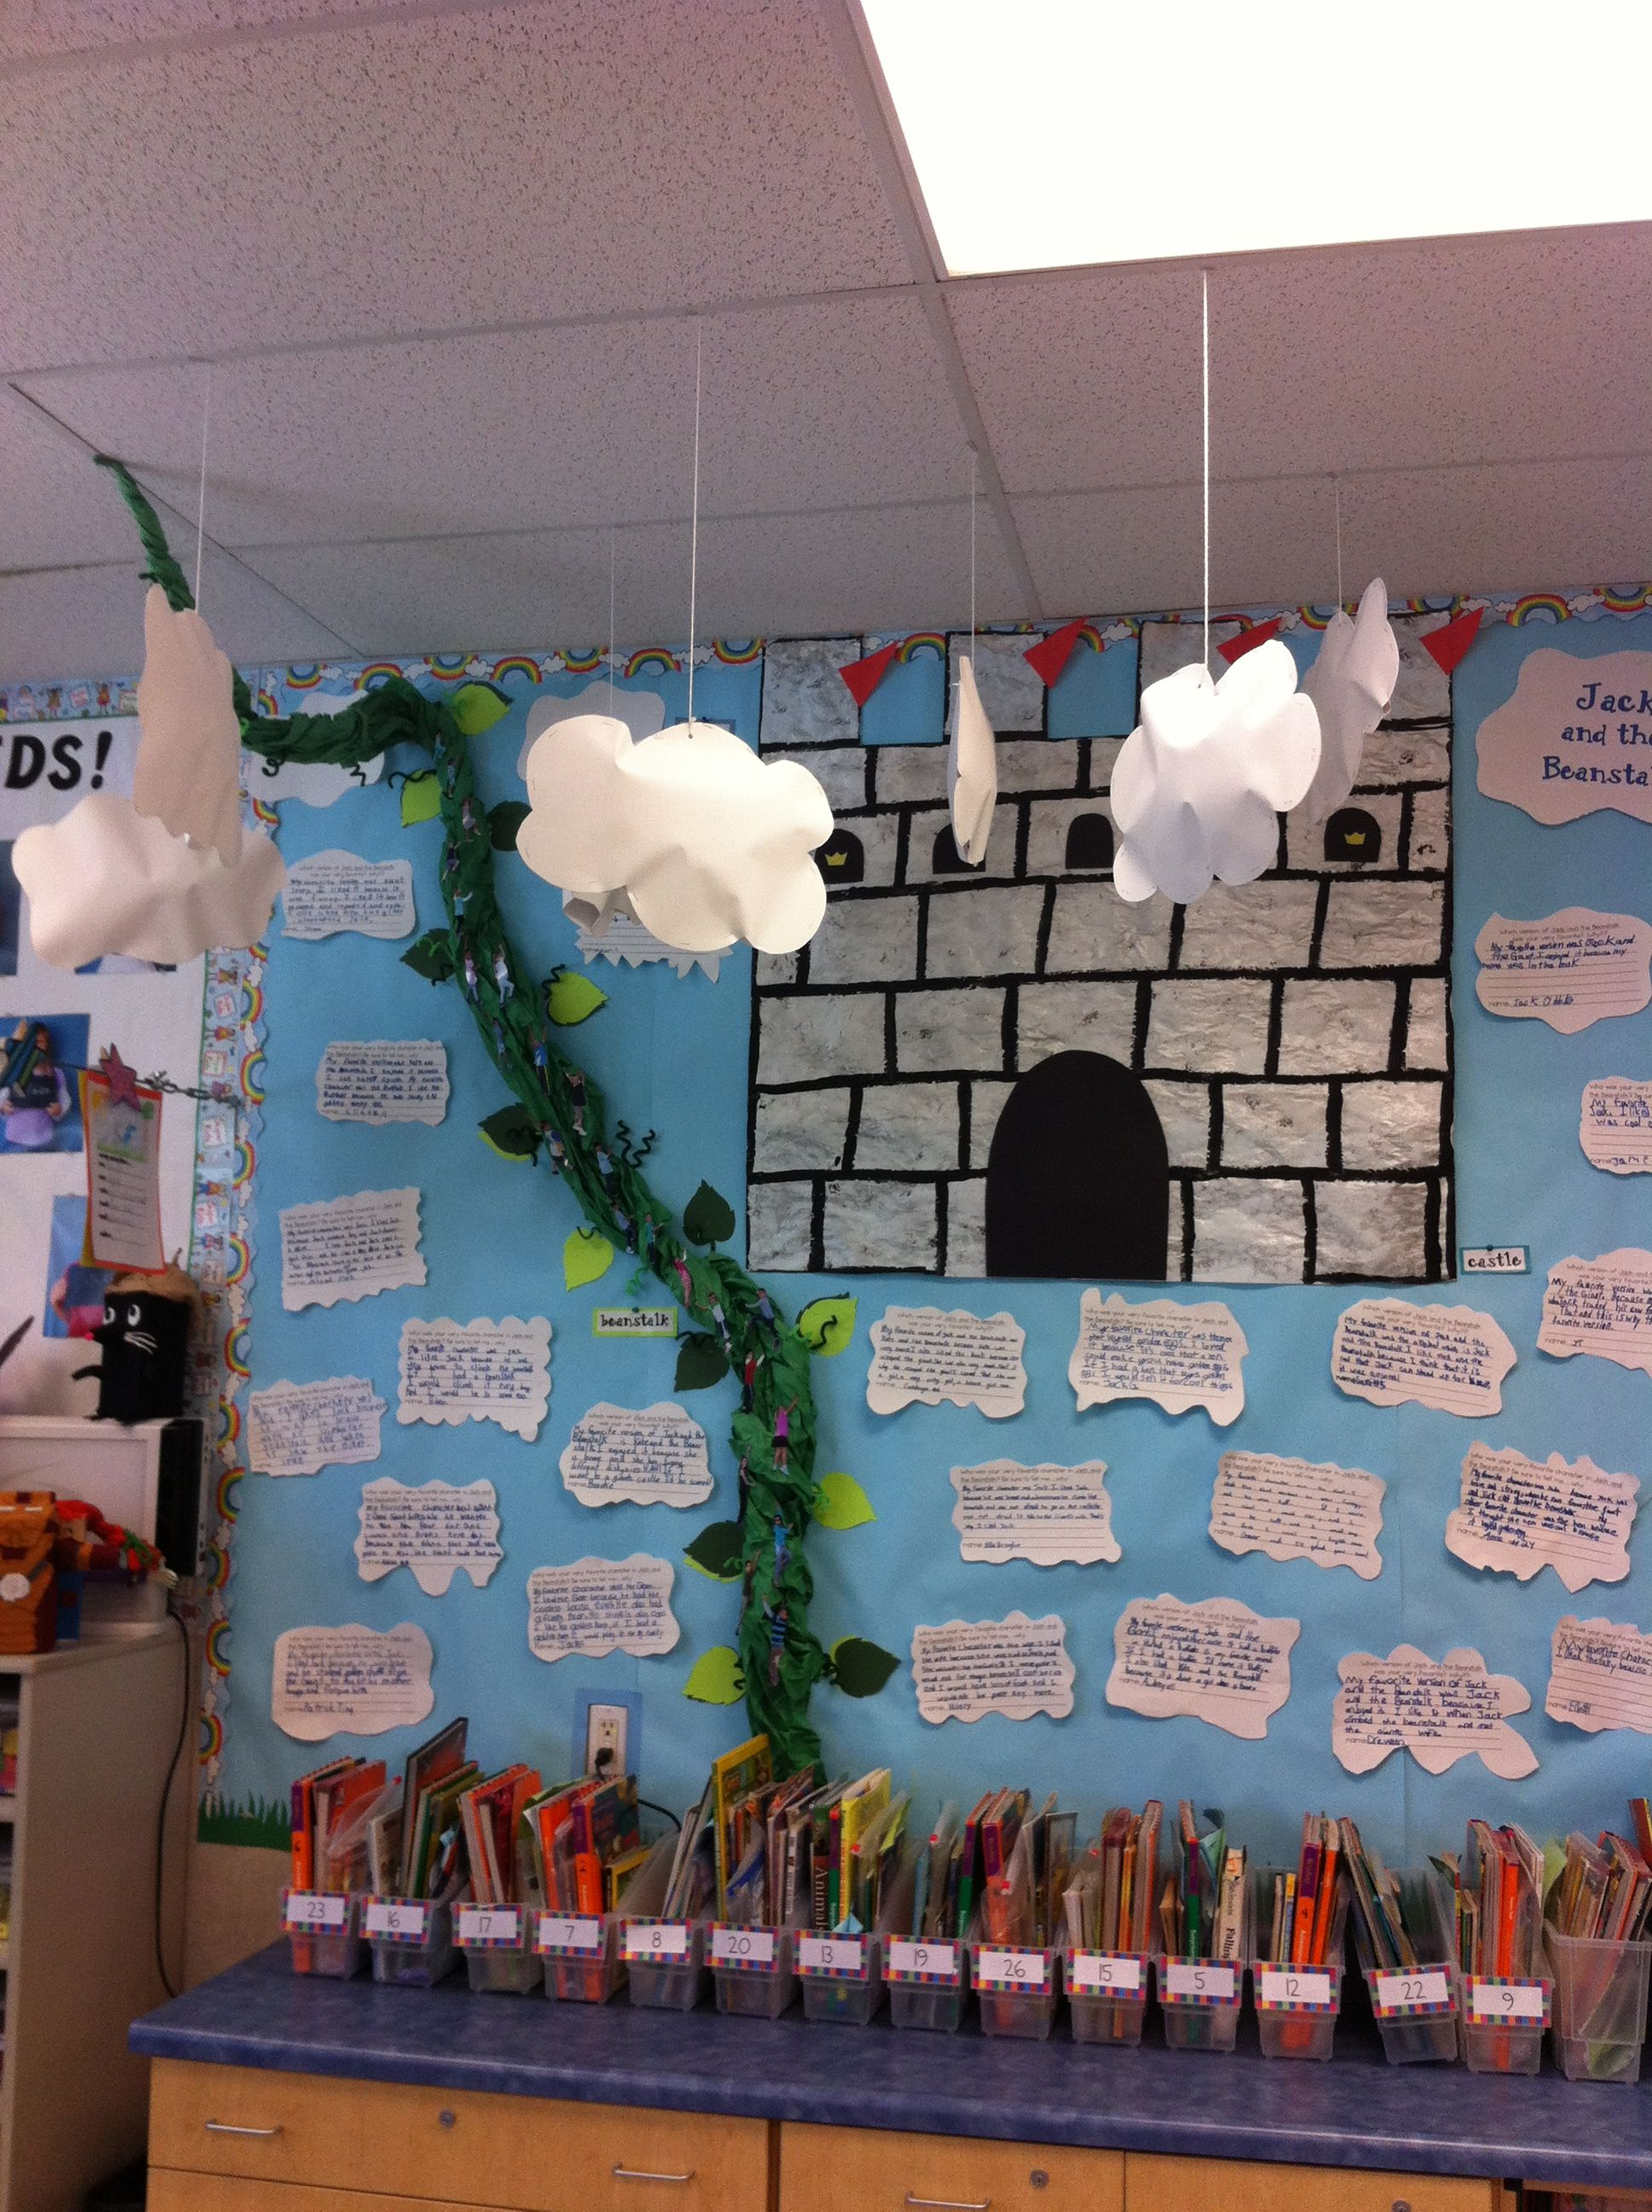 Jack And The Beanstalk Board